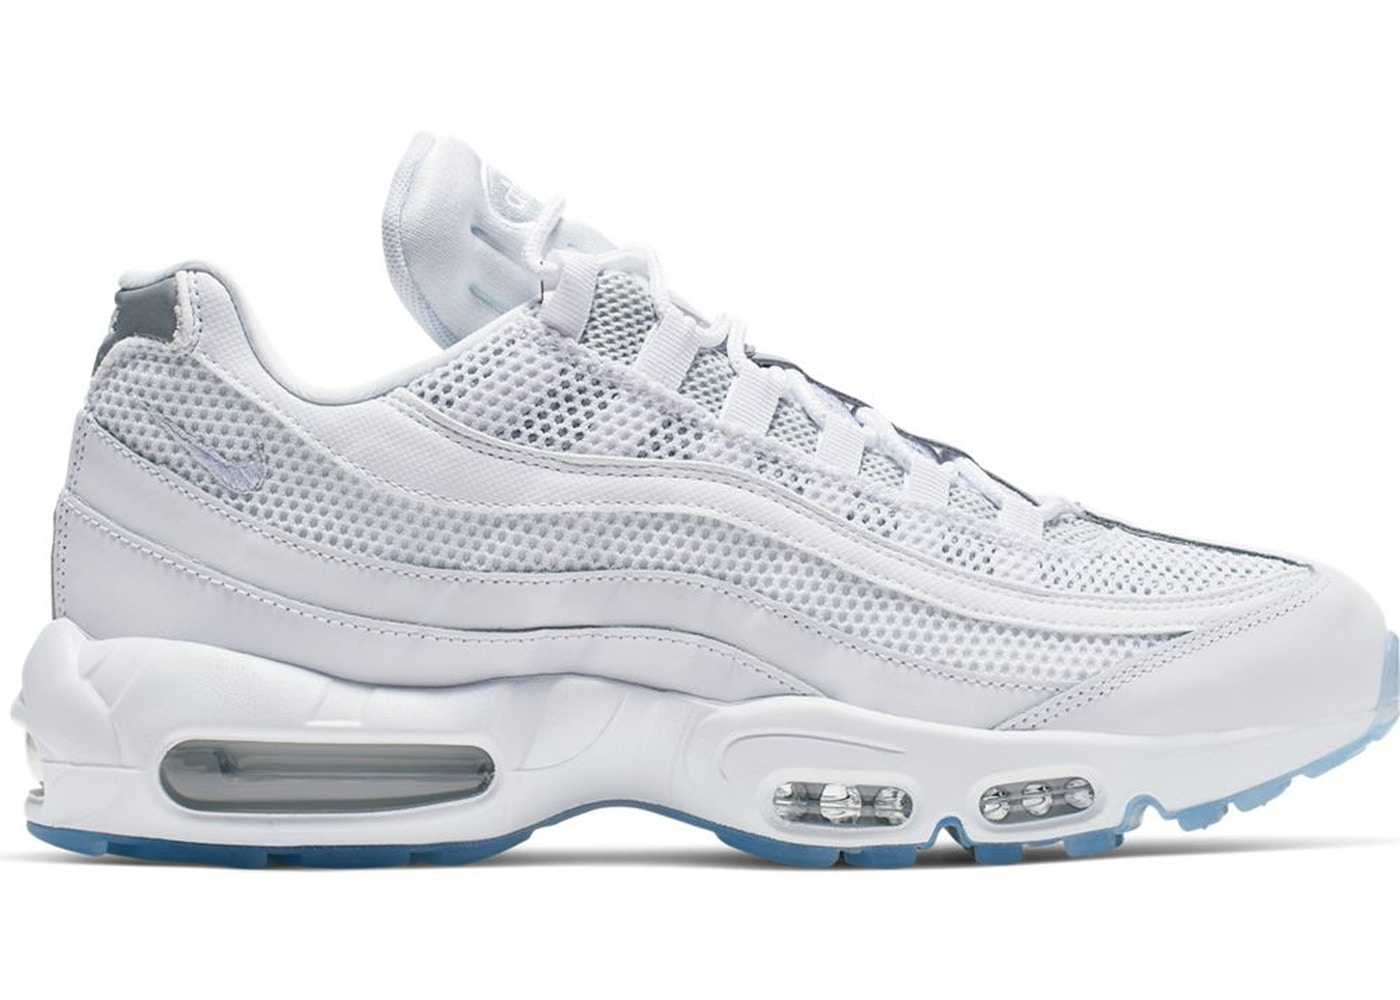 Nike NIKE Air Max 95 sneakers men gap Dis WMNS AIR MAX 95 PREMIUM white white 807,443 018 [194]